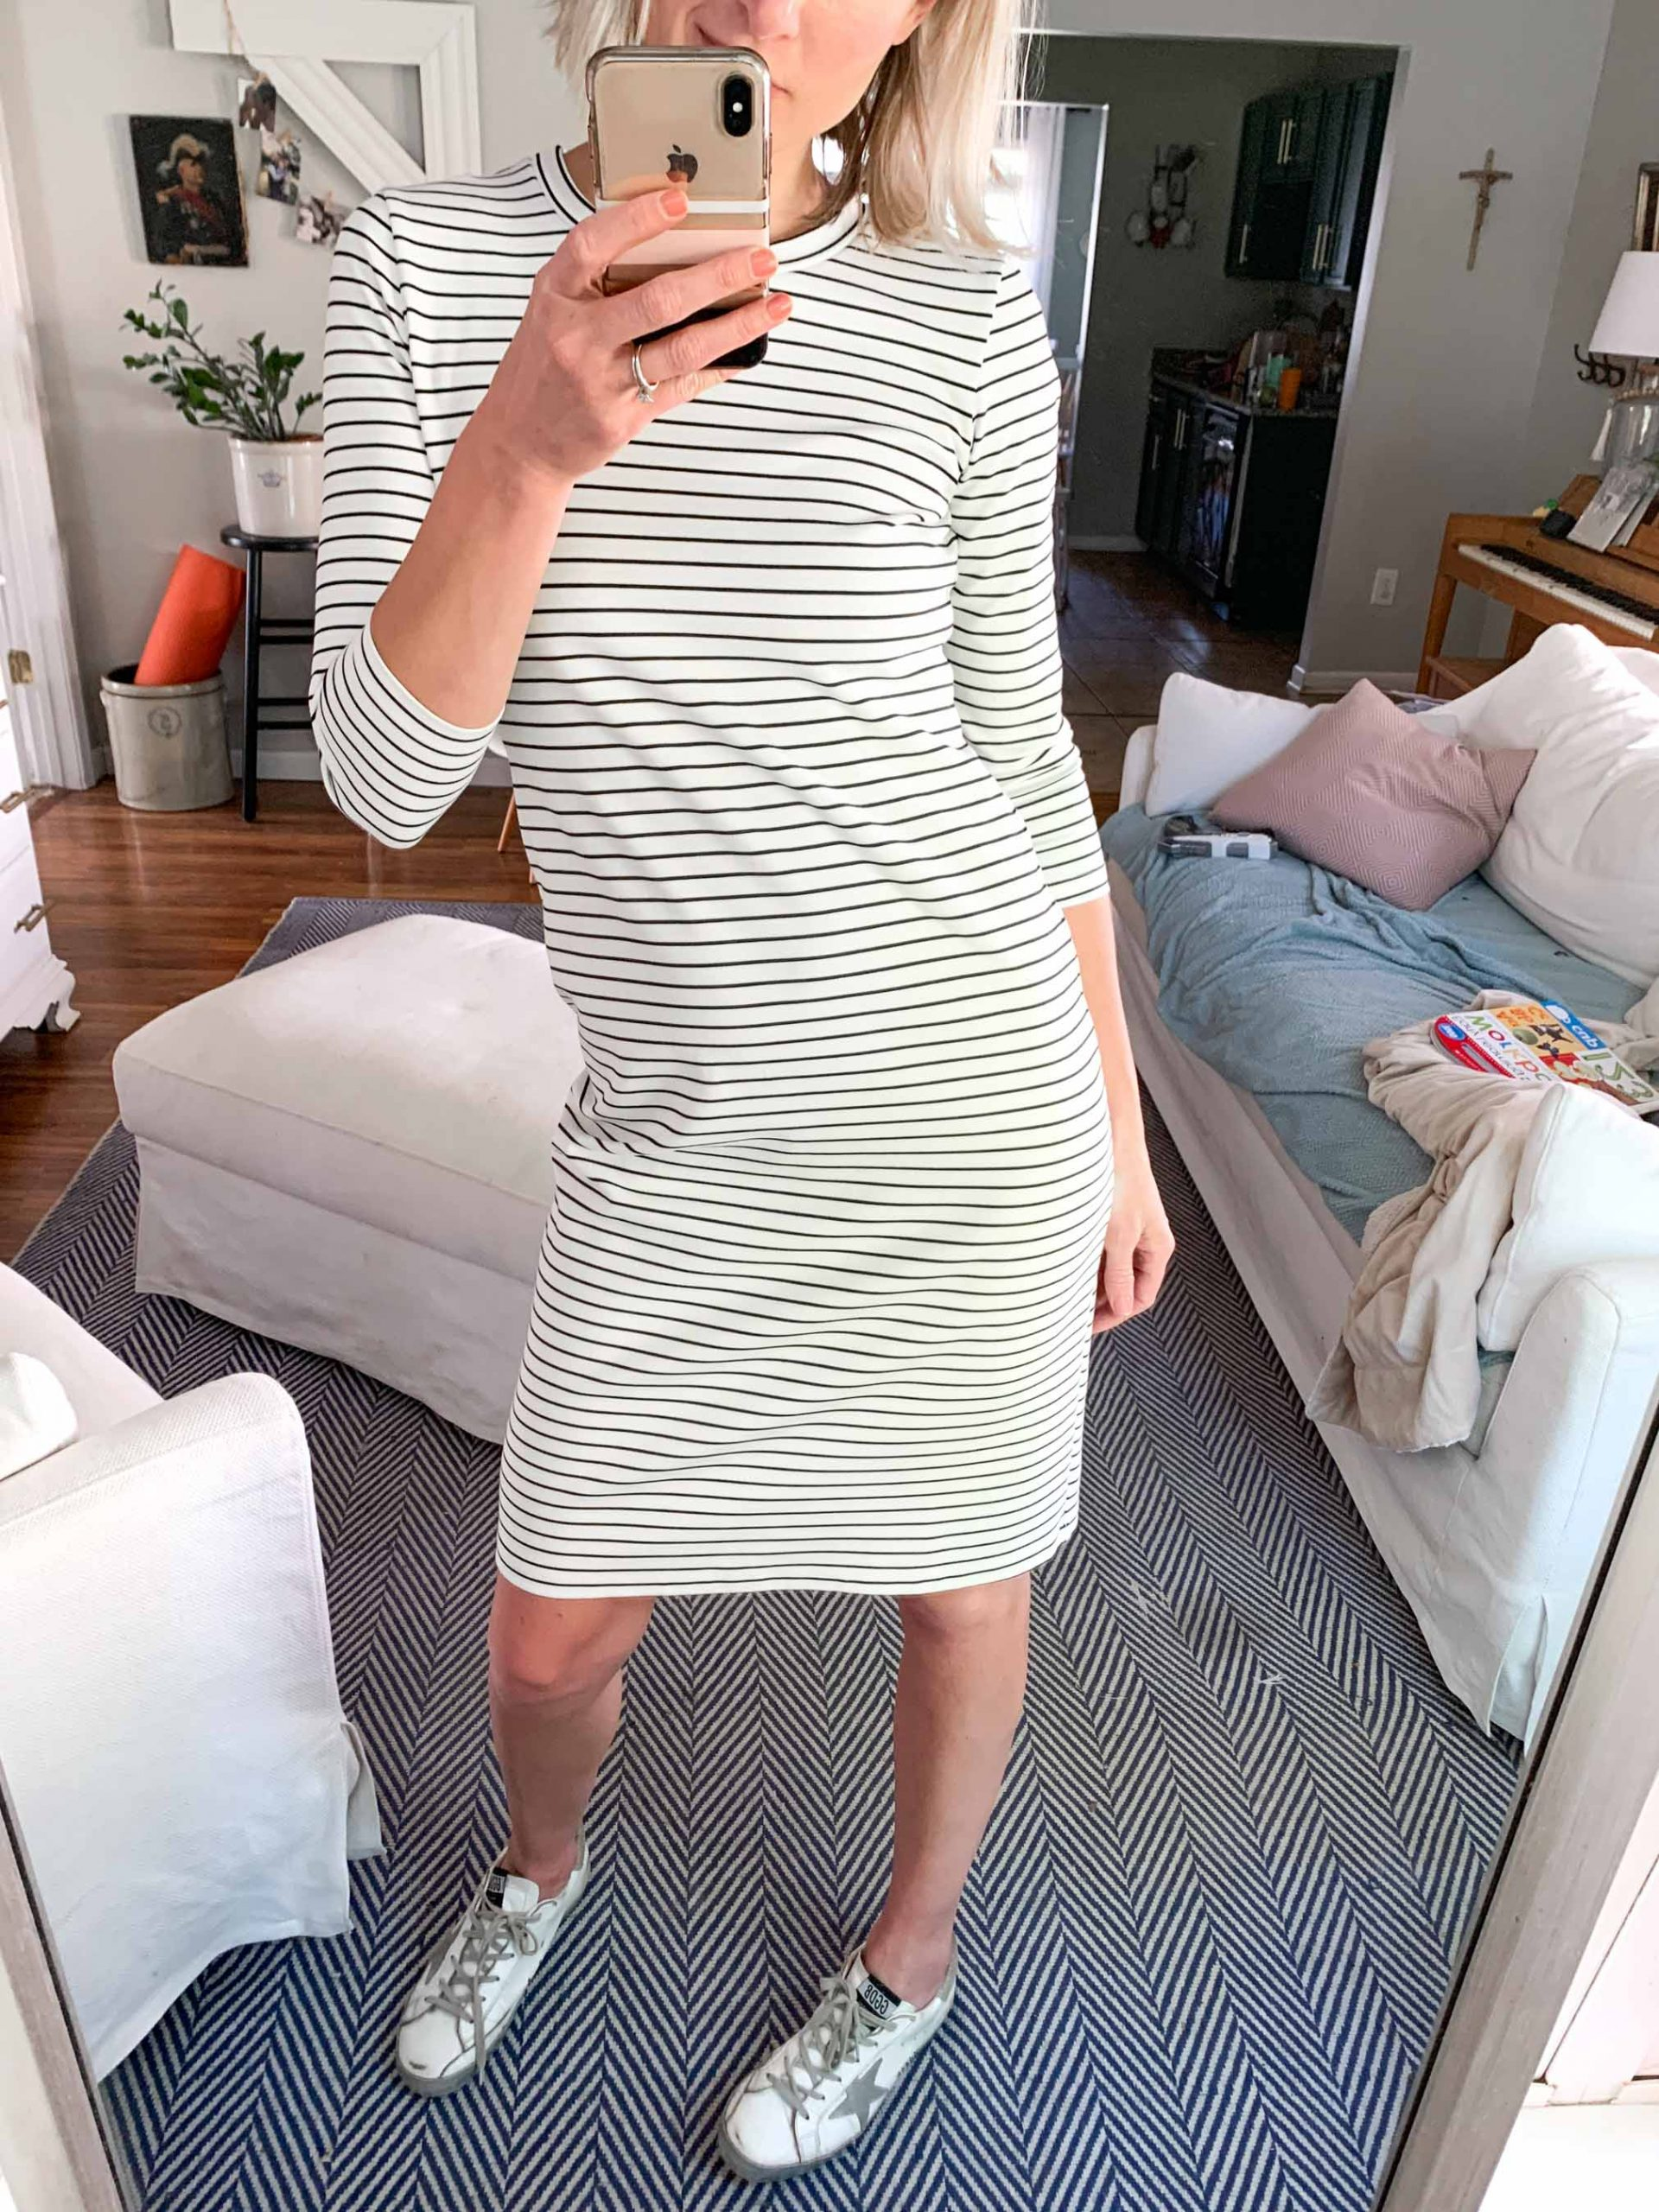 Comfy like leggings = this black & white striped dress. Pretty + Fun. Wear it w/ Doc Martens, Birkenstocks, Golden Goose, sandals & booties. 10 outfit ideas.